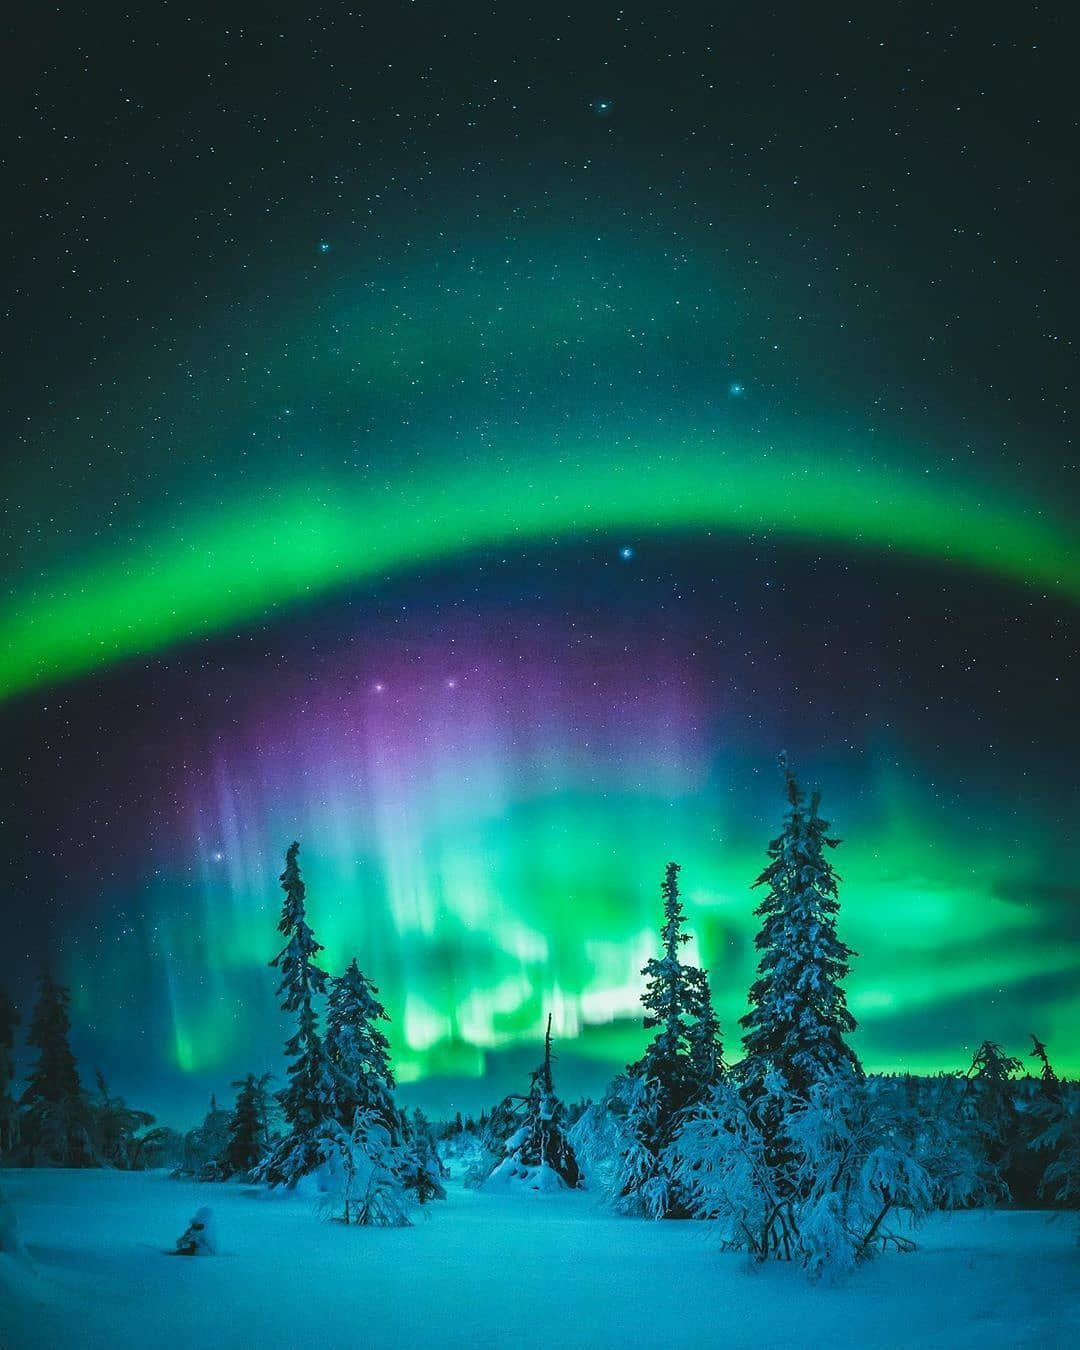 Planet Earth On Instagram Photo By Seffis Bright Nights In Lapland Finland Nature P In 2020 Dreamy Landscapes Northern Lights Northern Lights Photography